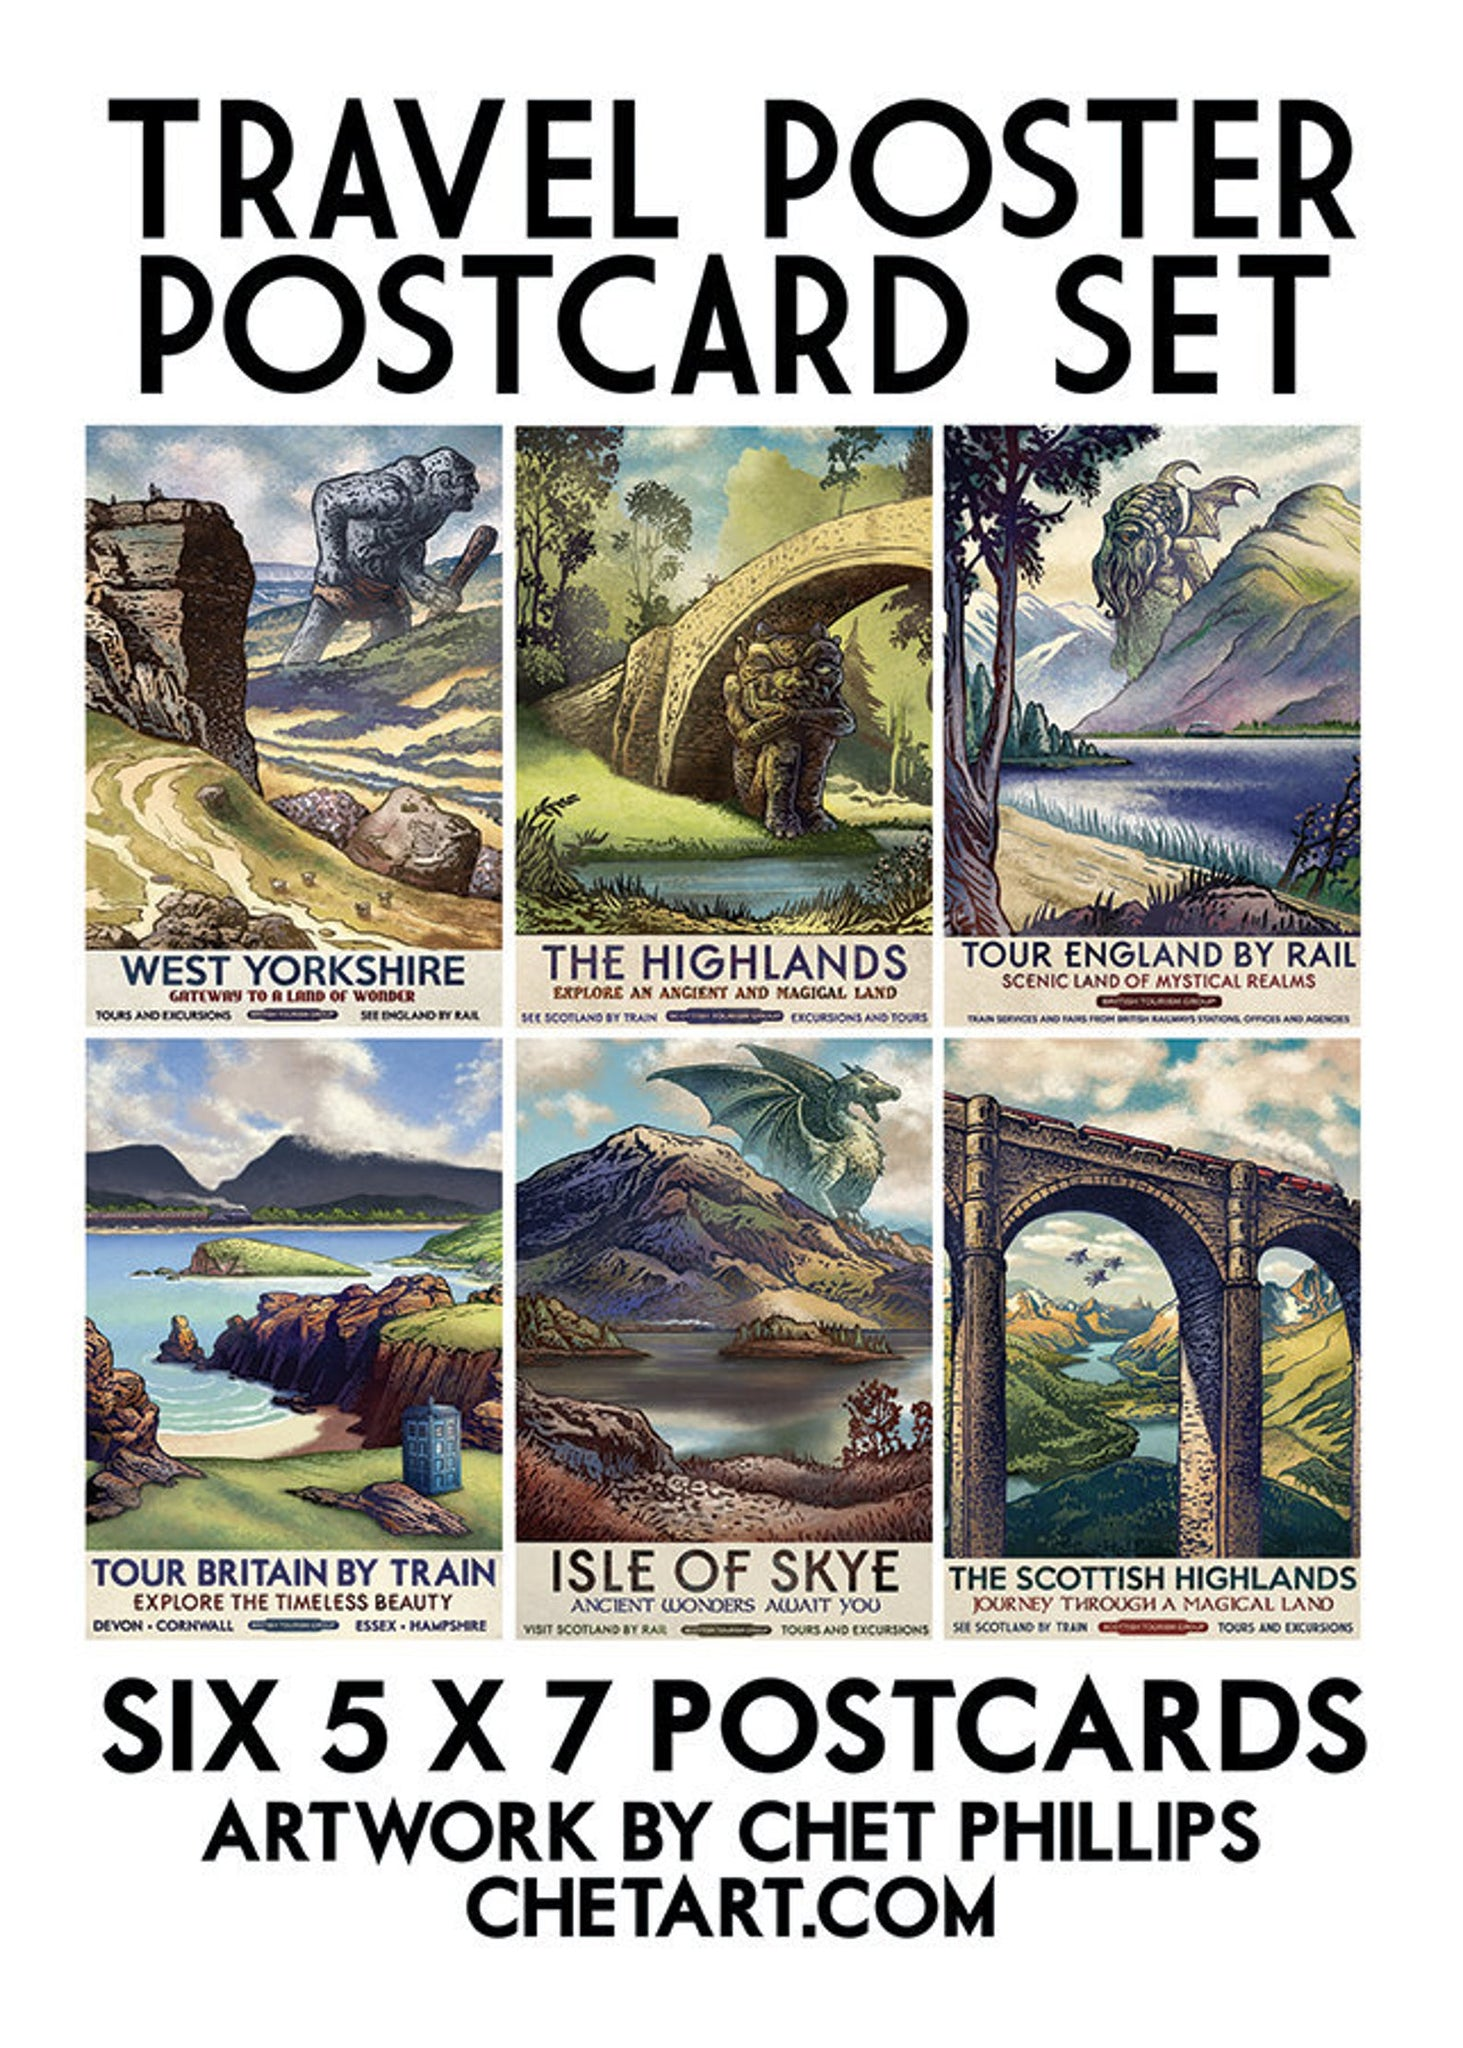 British Fantasy Travel Postcard Set- 6 postcards